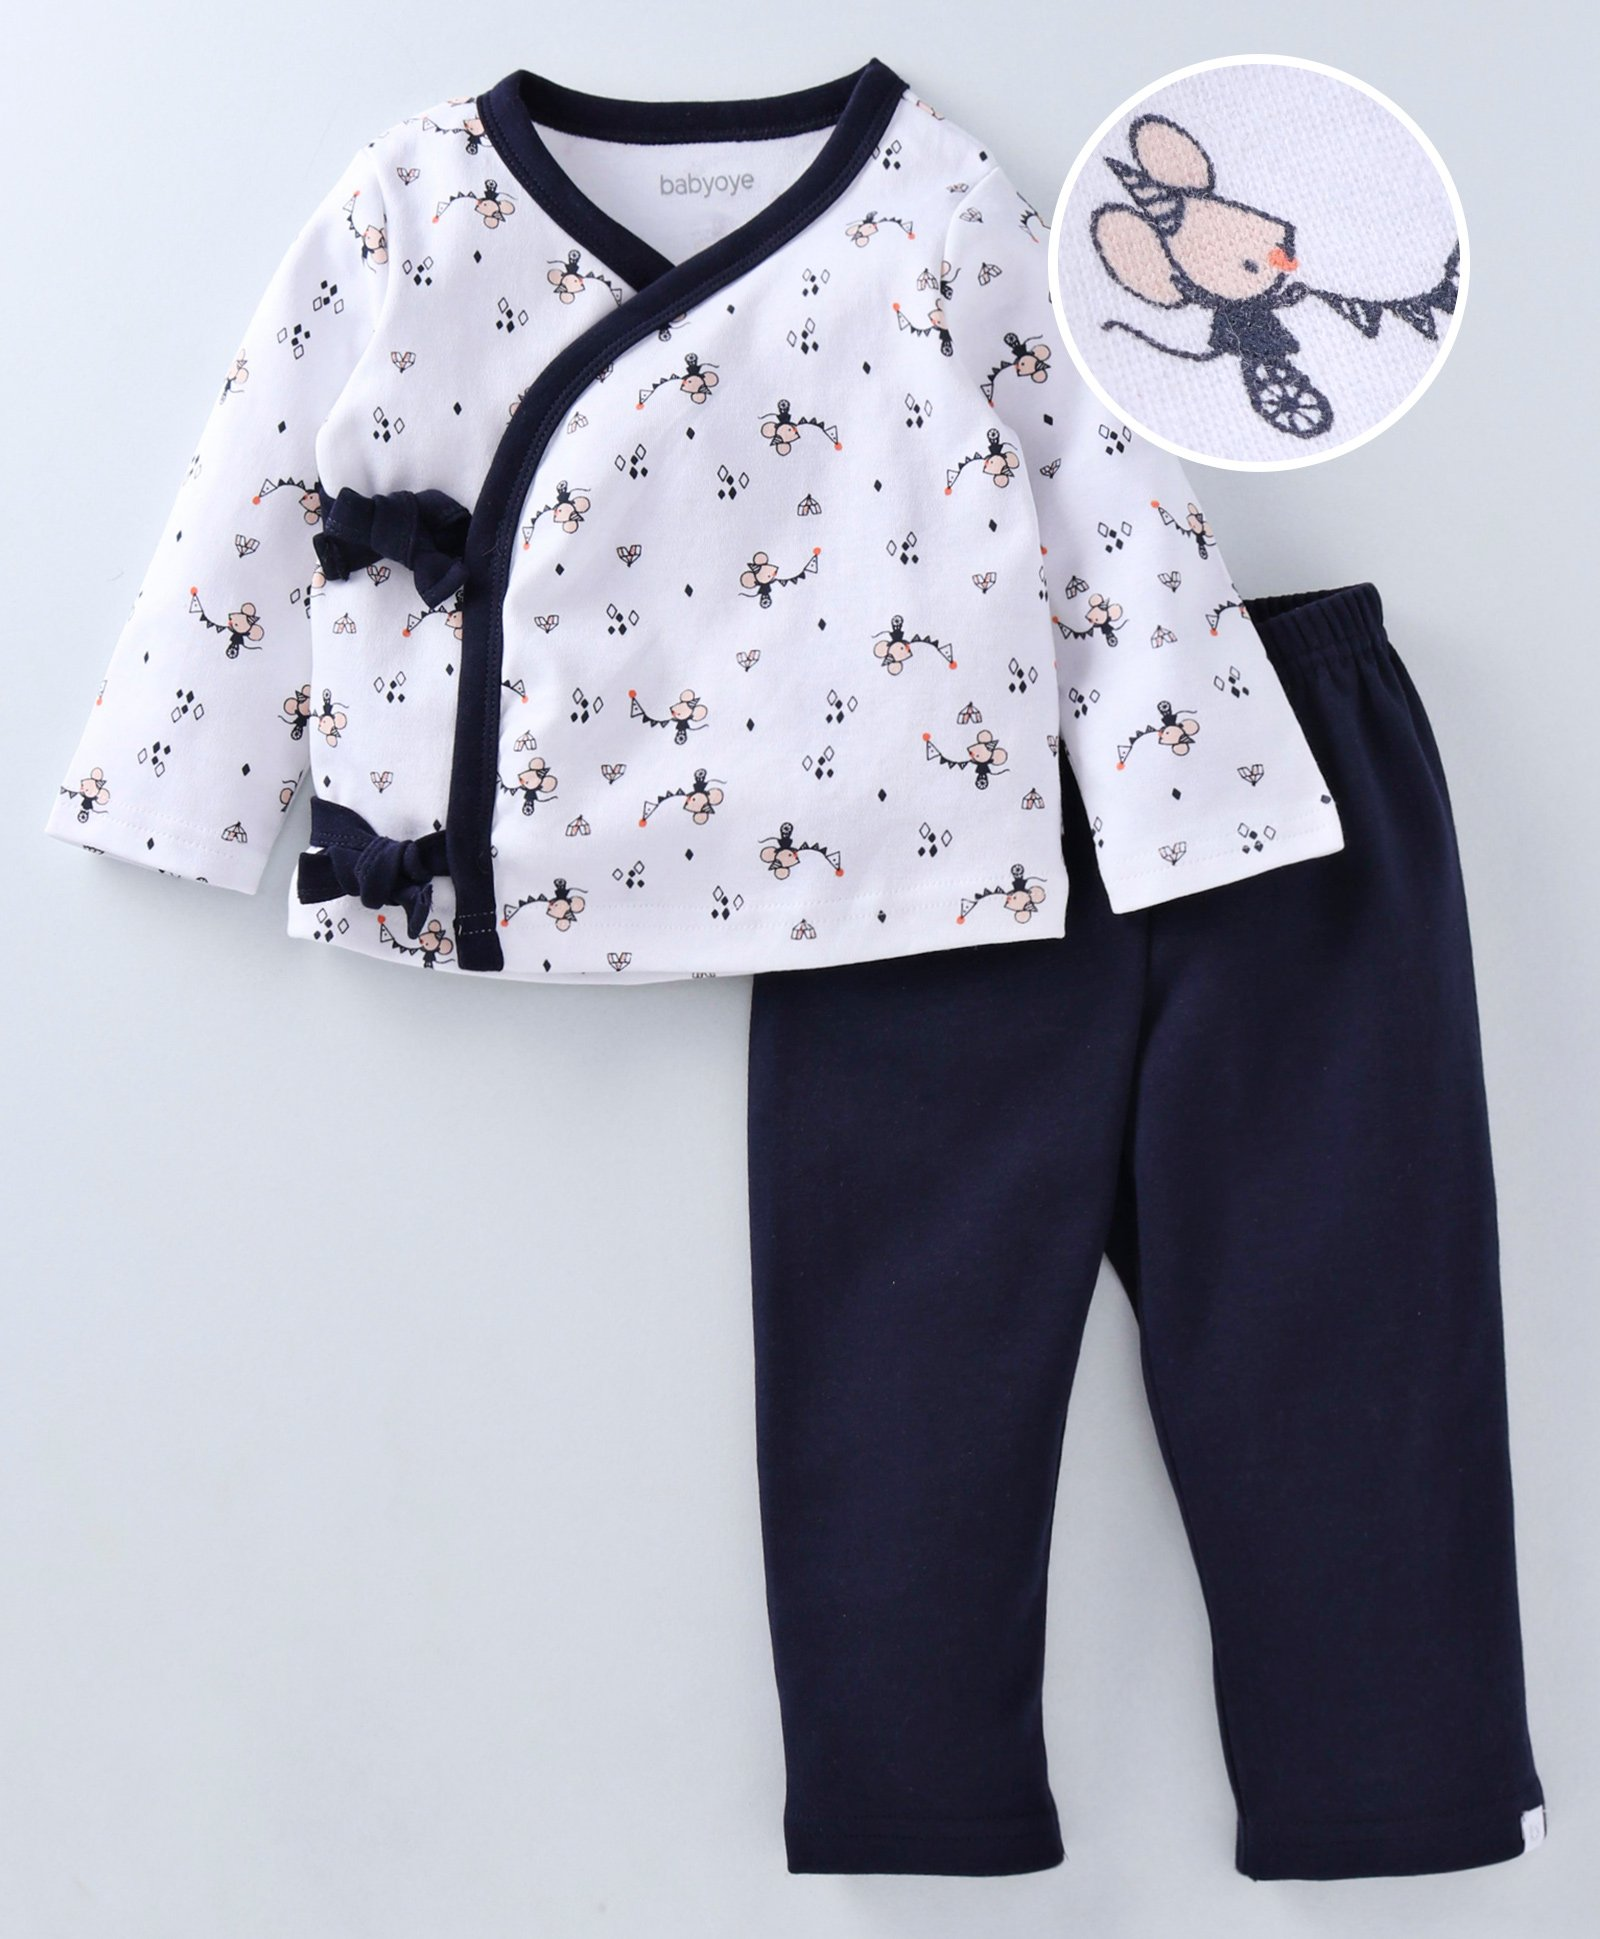 bf717c836 Babyoye Full Sleeves Tie Knot Style Cotton Tee With Lounge Pant Mouse Print  - Navy